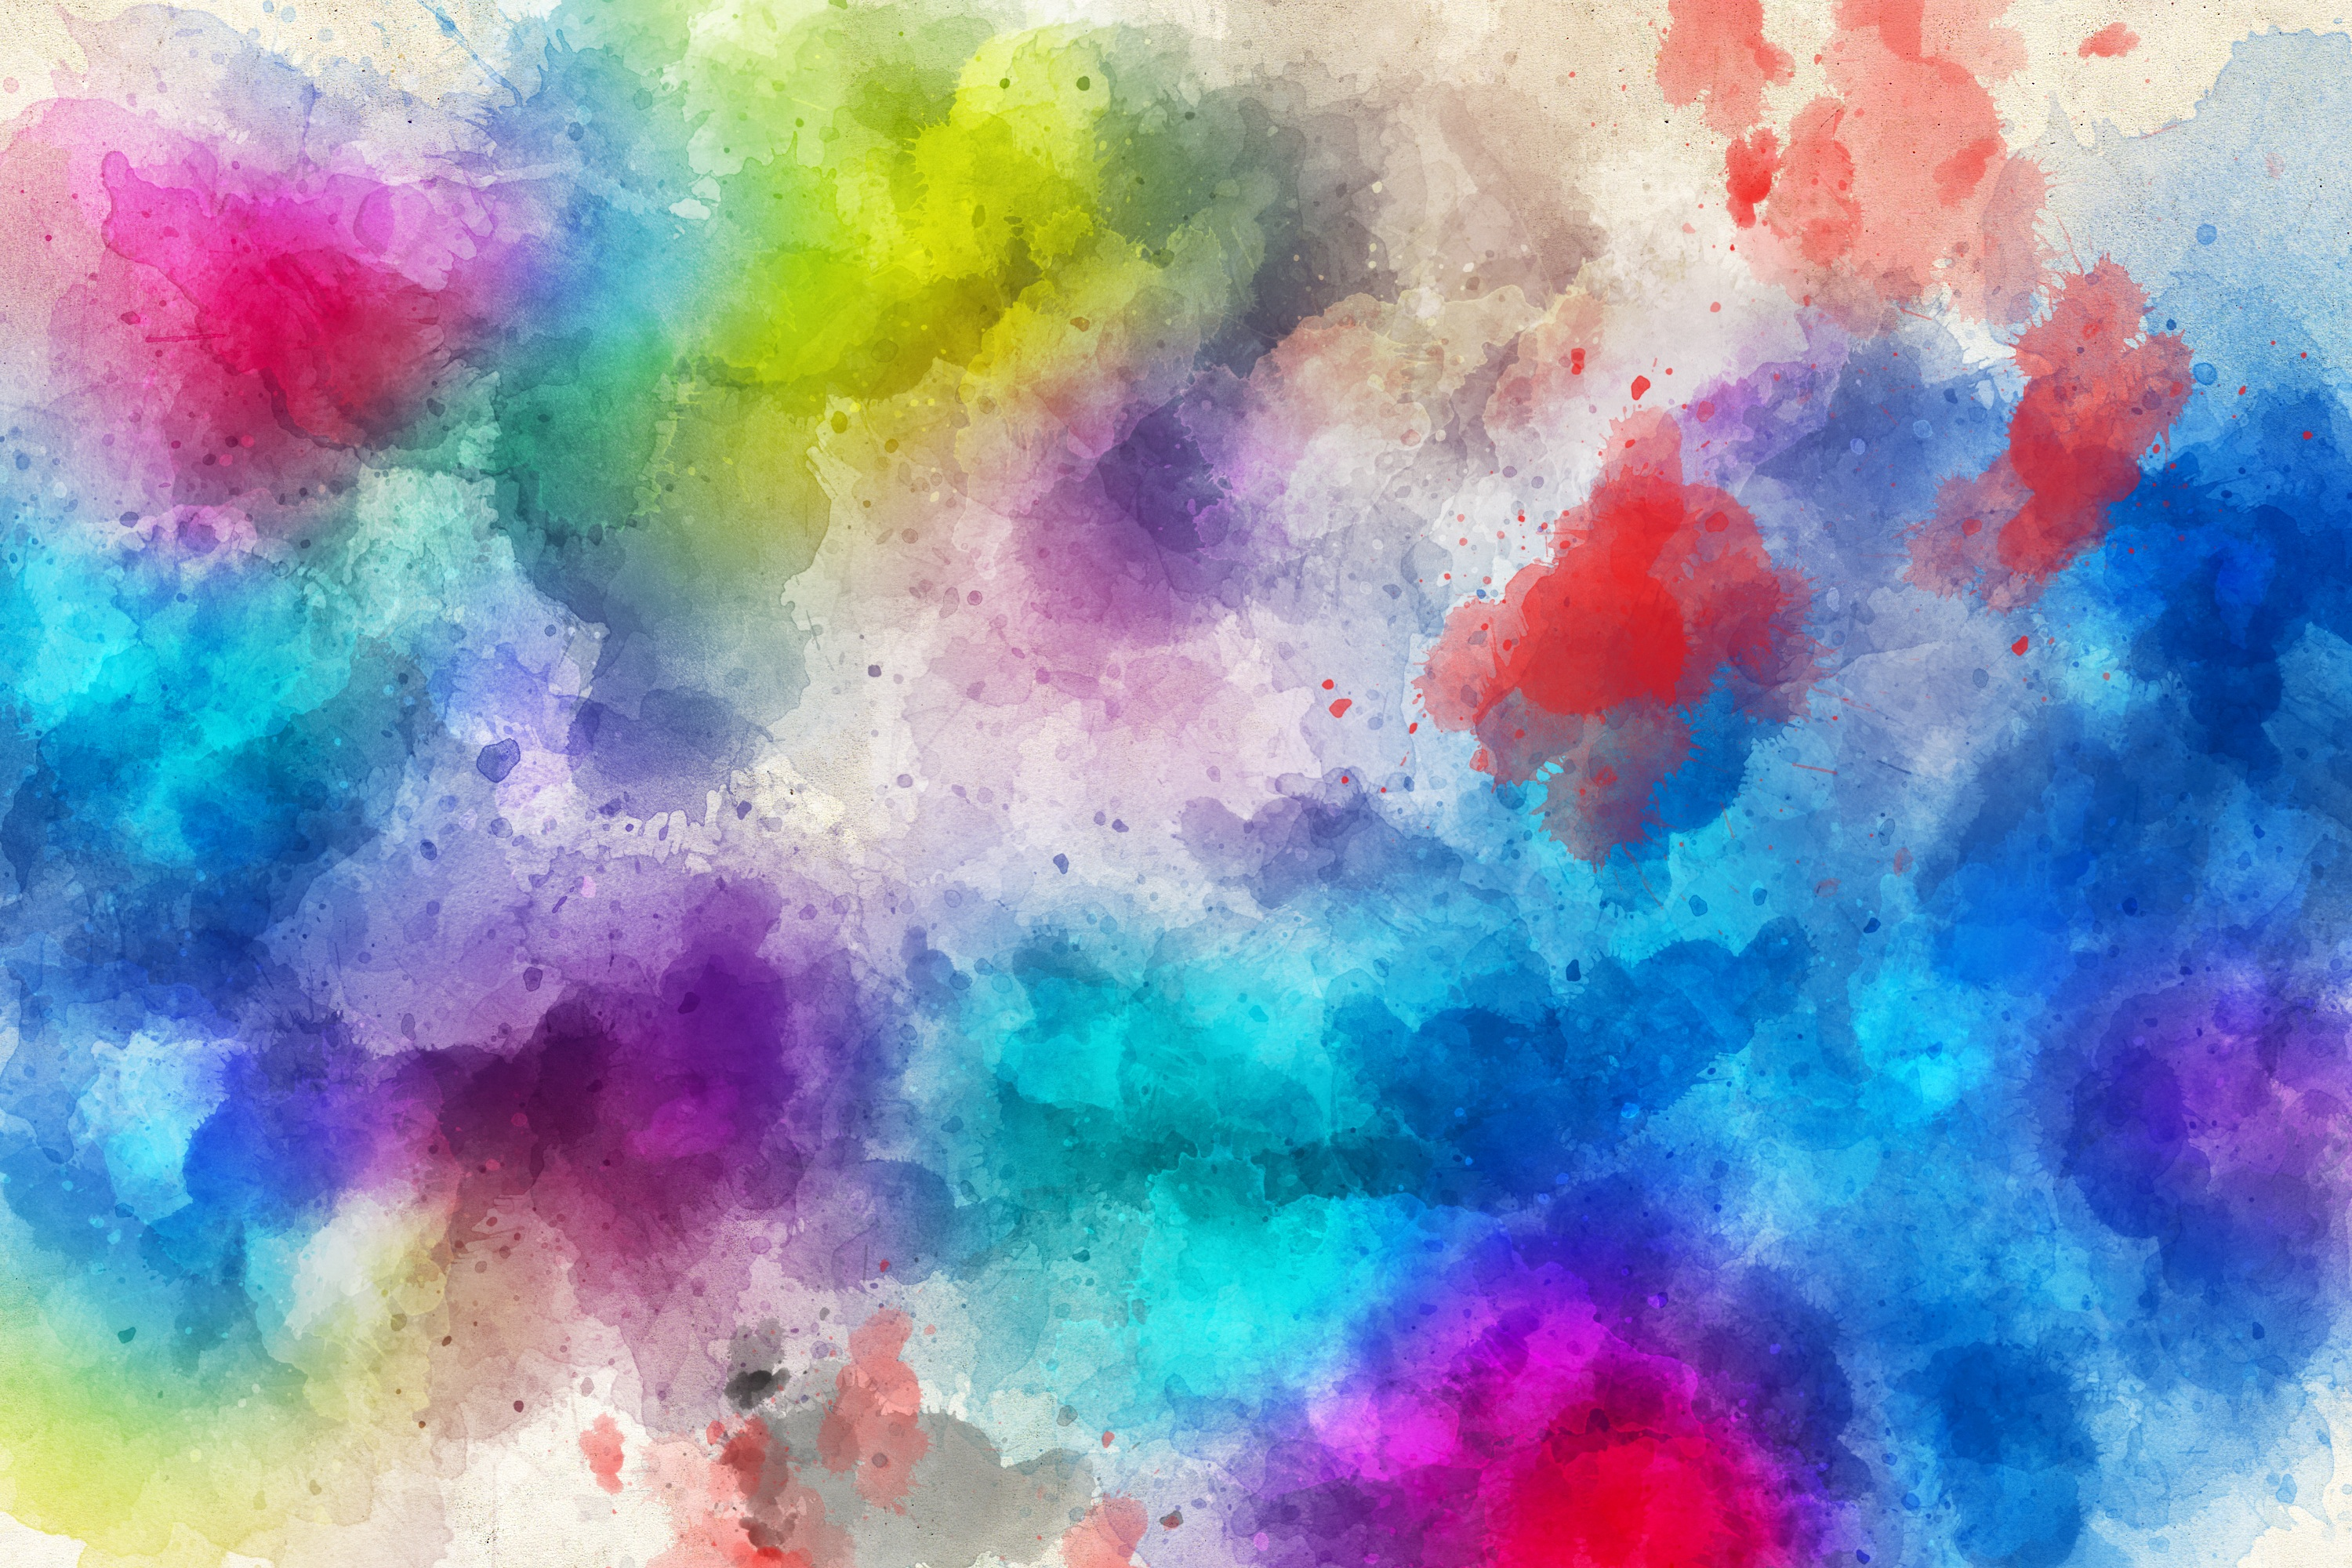 139522 download wallpaper Abstract, Paint, Stains, Spots, Watercolor screensavers and pictures for free